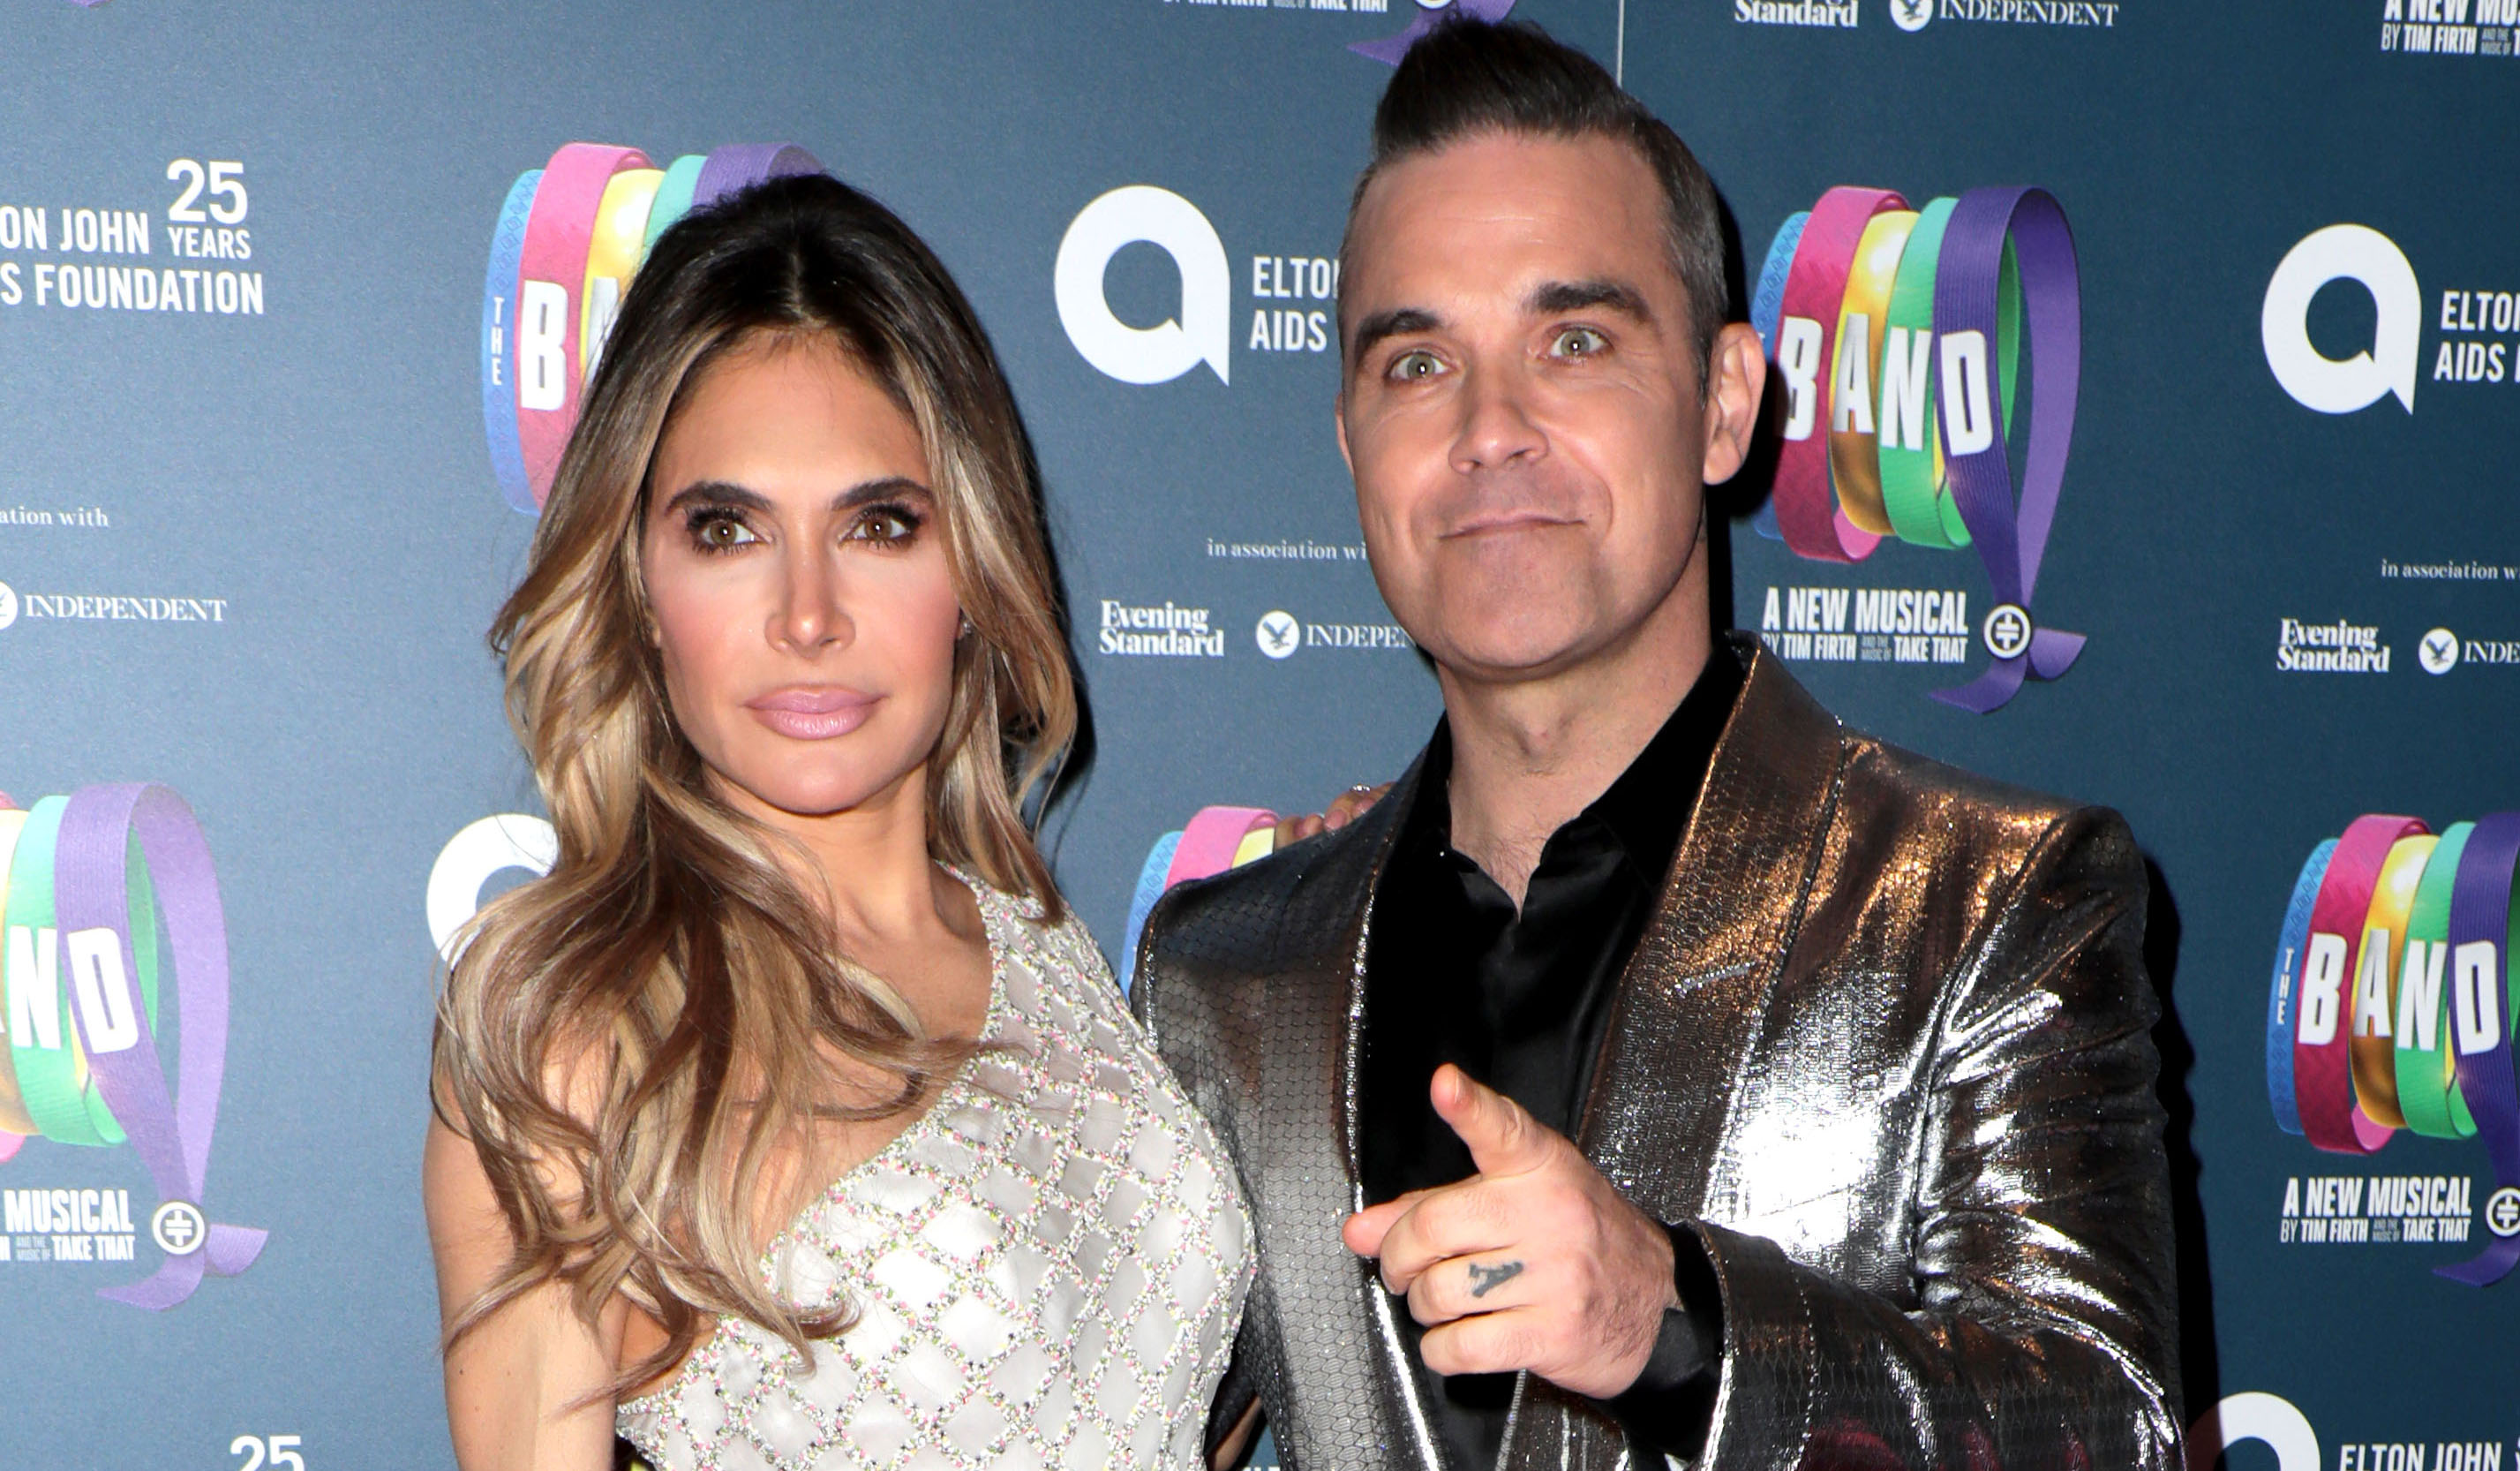 Robbie Williams and Ayda Field 'quit X Factor over salary demands'